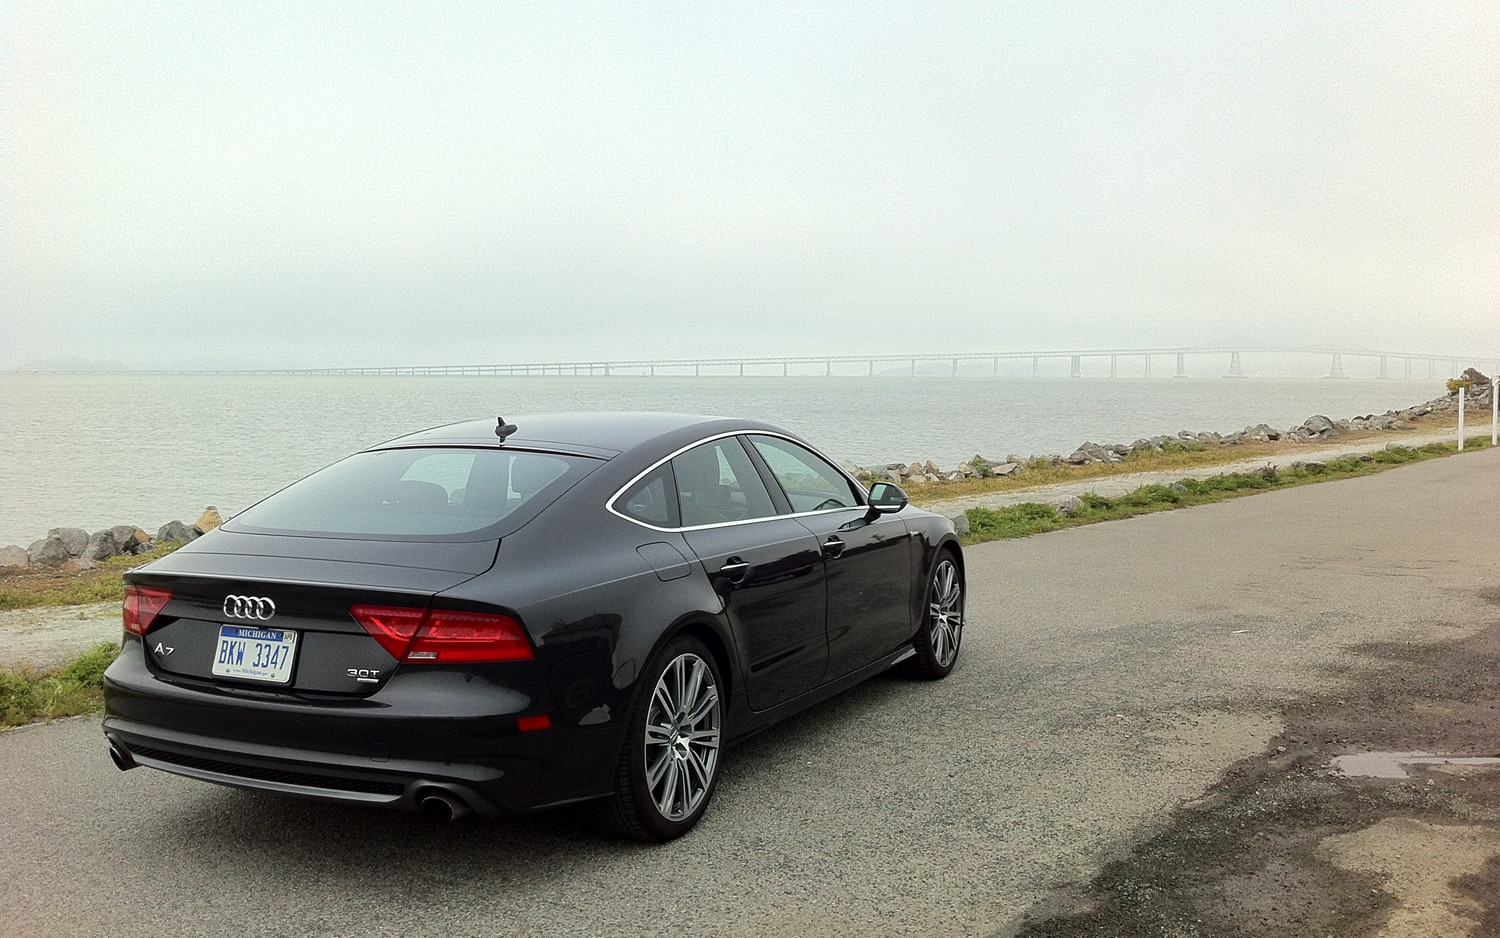 2012 Audi A7 Rear Right Side View2